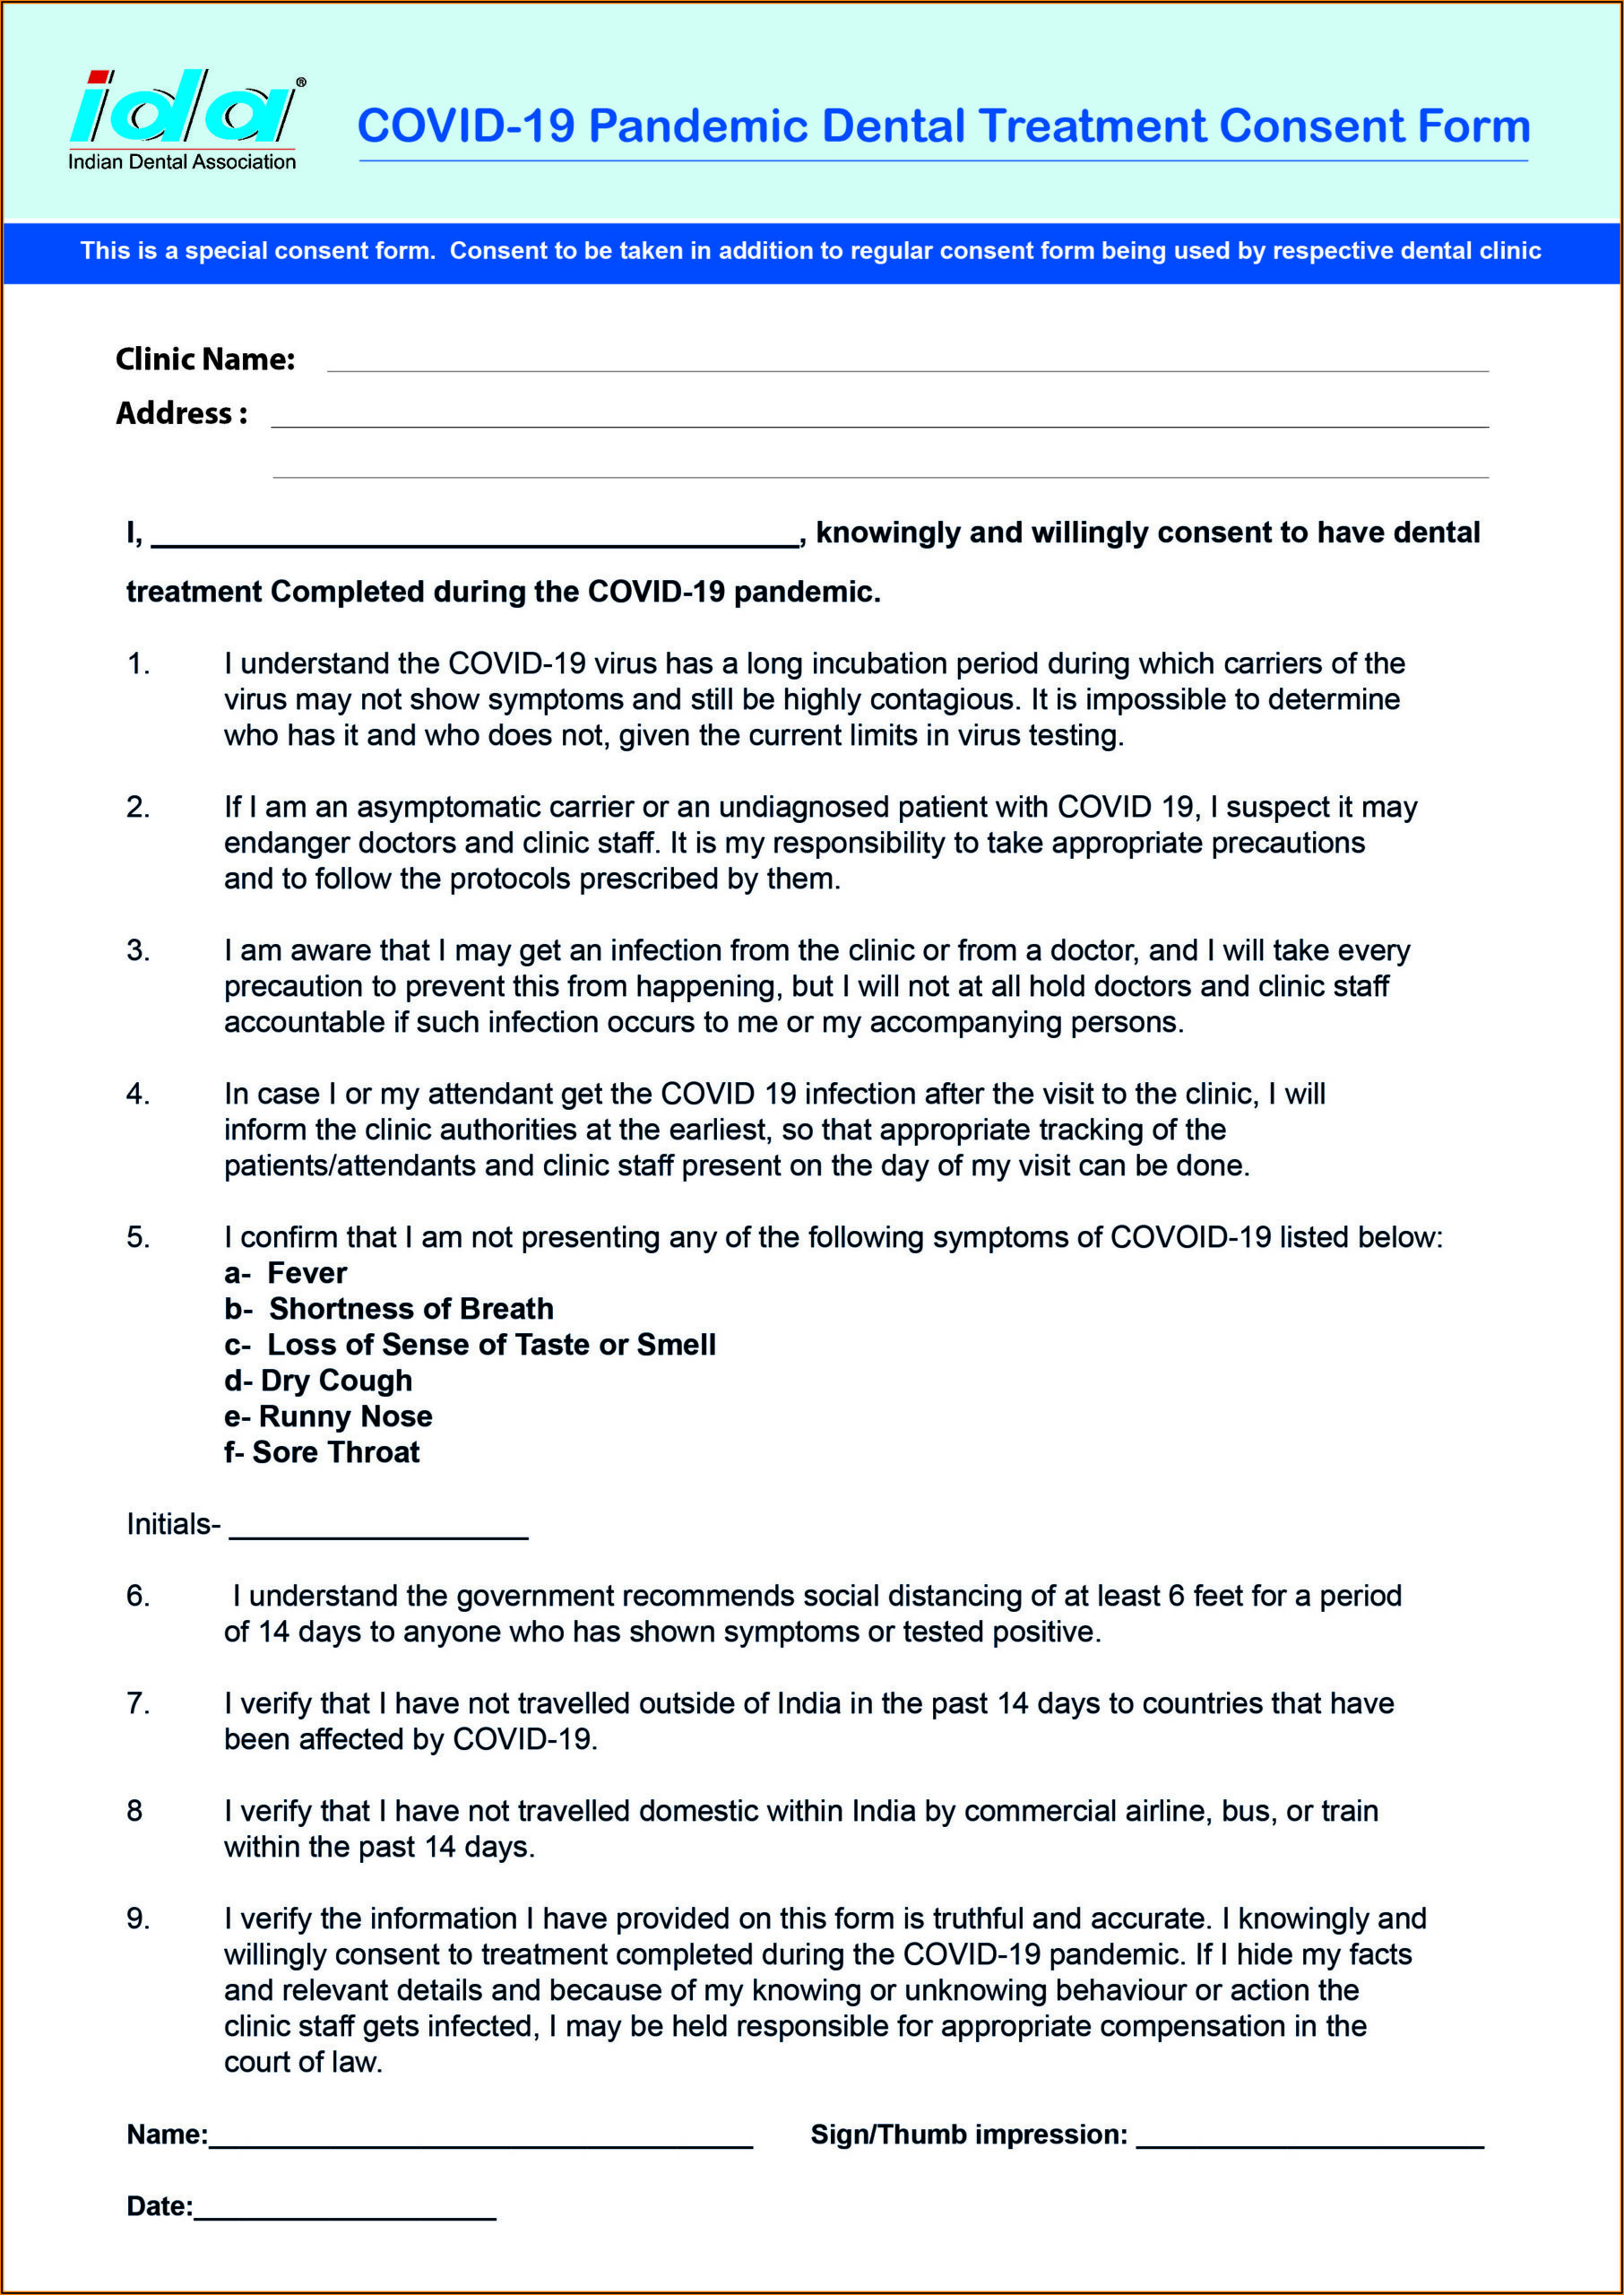 General Dental Treatment Consent Form Covid 19 Pandemic